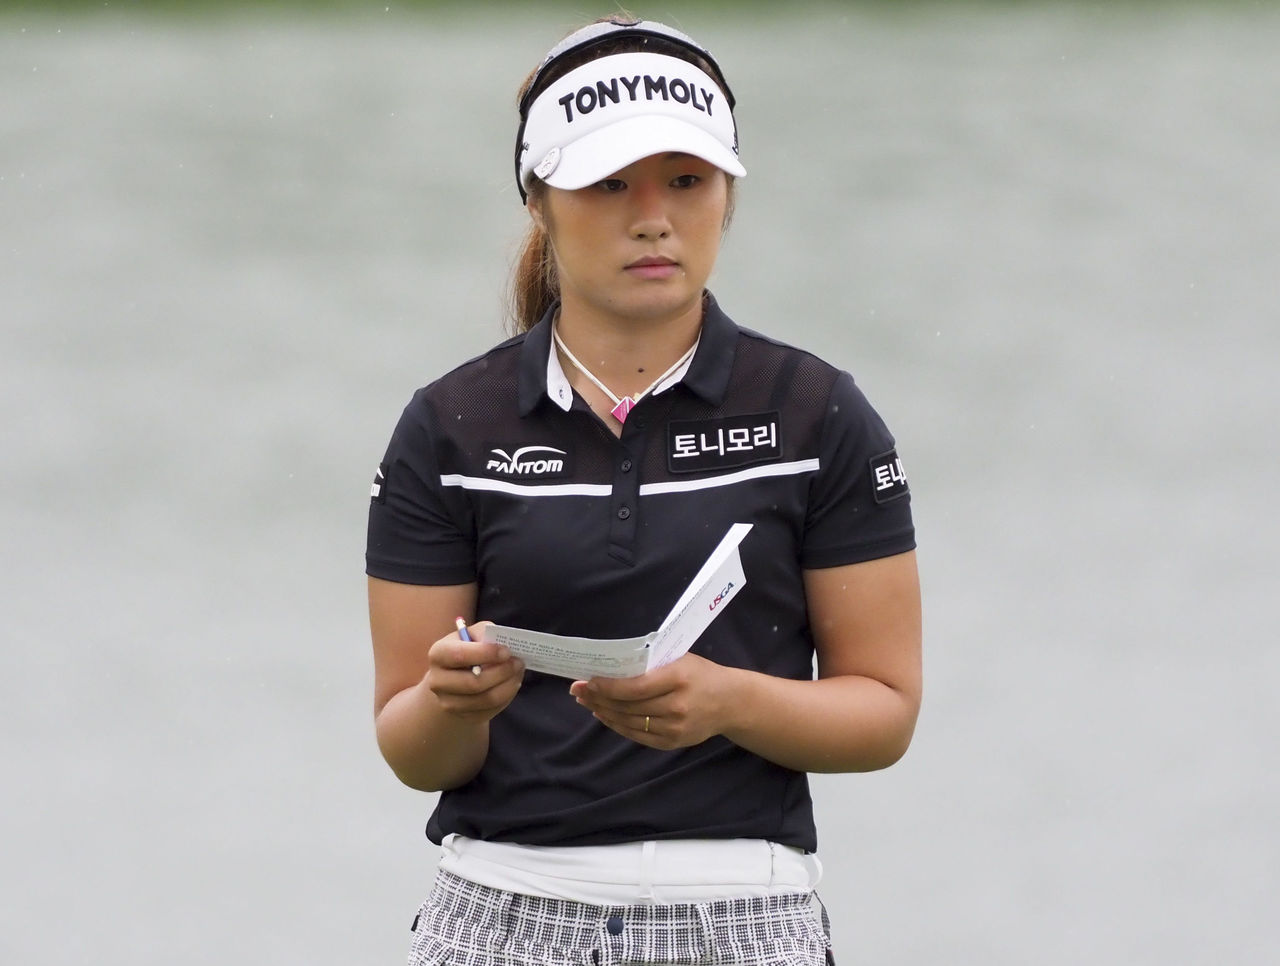 Cropped 2017 07 14t170224z 1472717513 nocid rtrmadp 3 lpga u s women s open second round